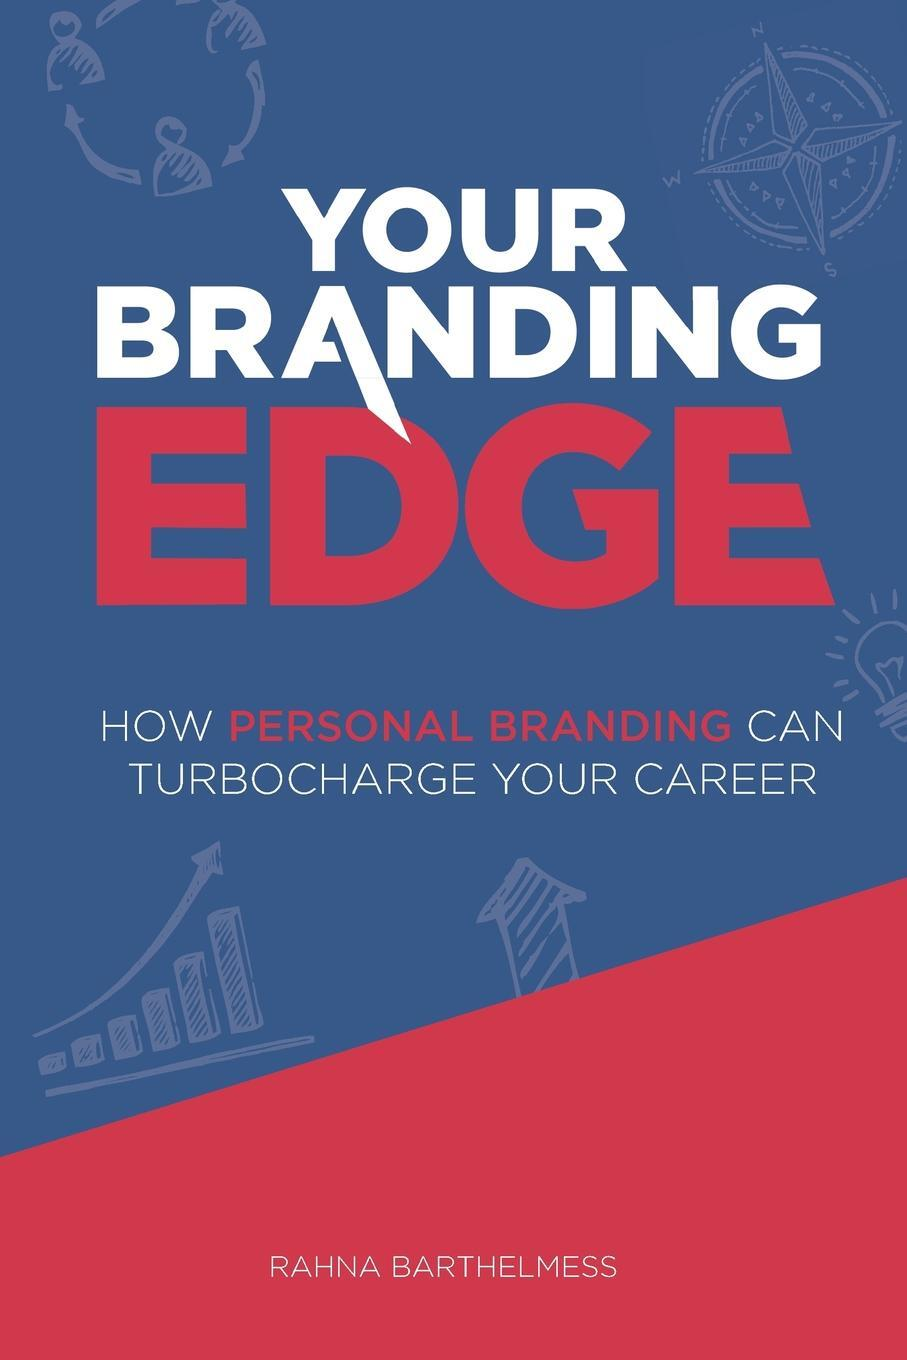 Your Branding Edge. How Personal Branding Can Turbocharge Your Career